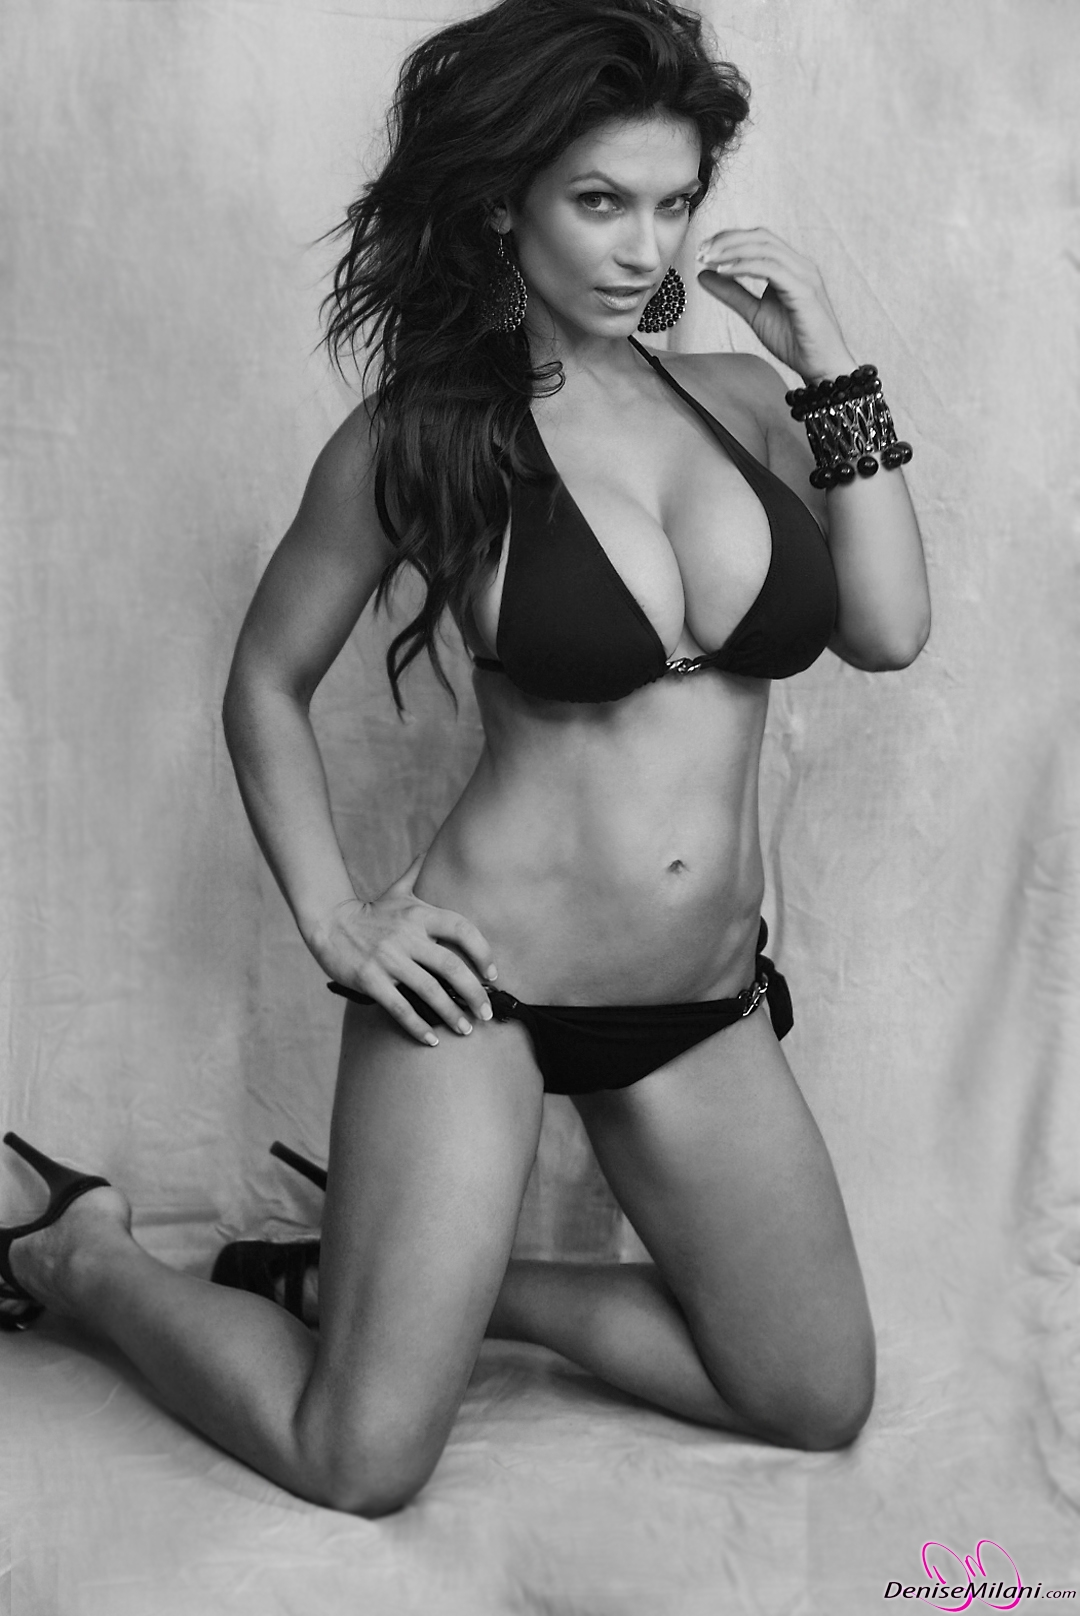 Denise-Milani-Black-and-White-1